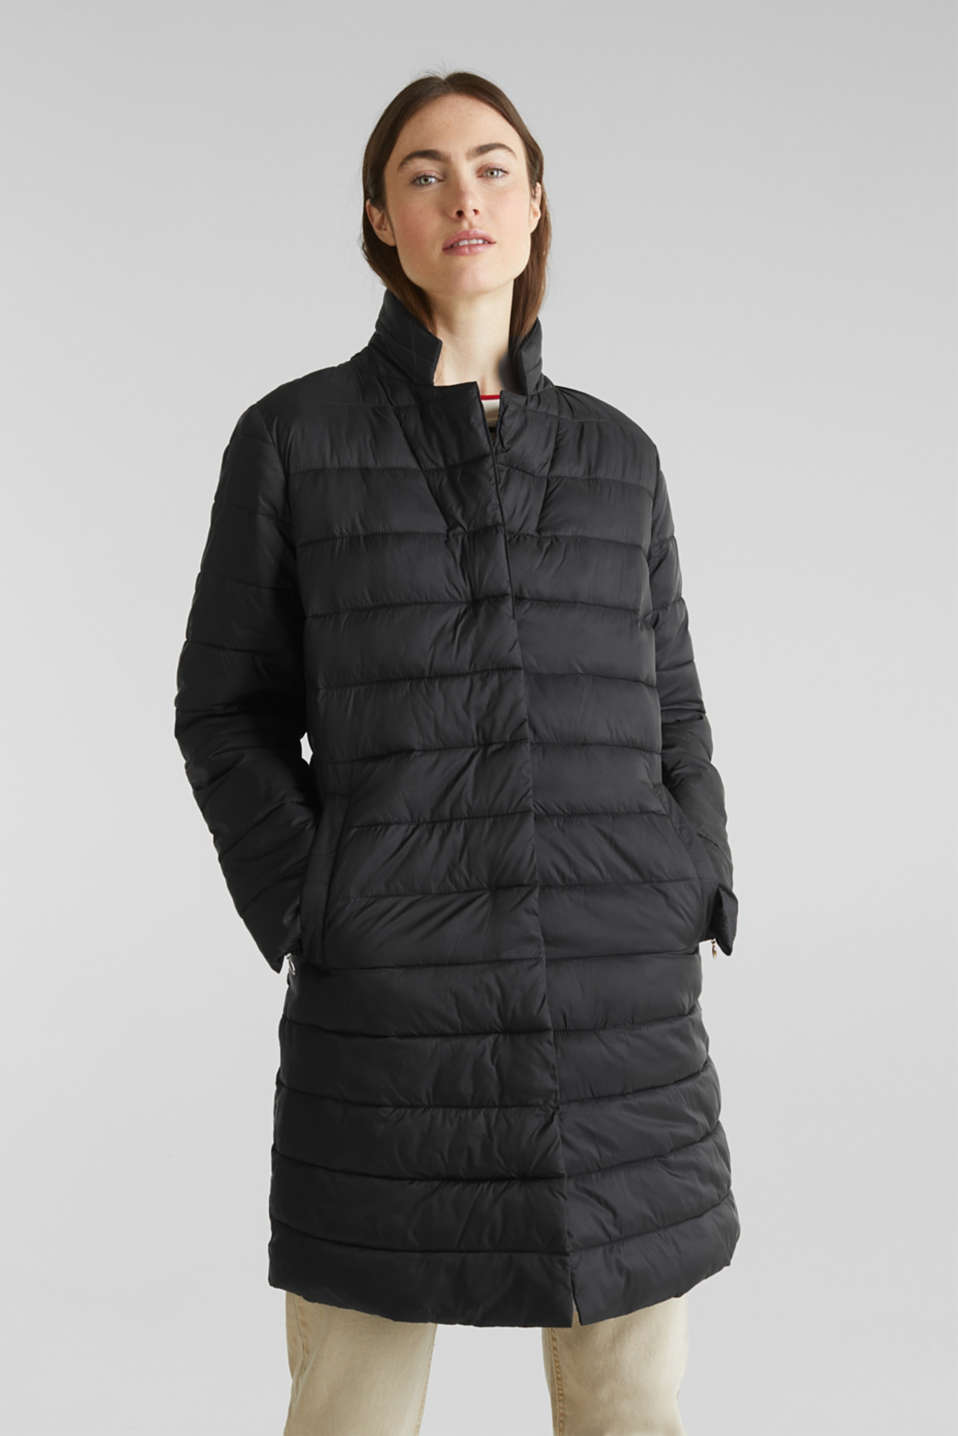 Esprit - Manteau matelassé au rembourrage 3M™ Thinsulate™